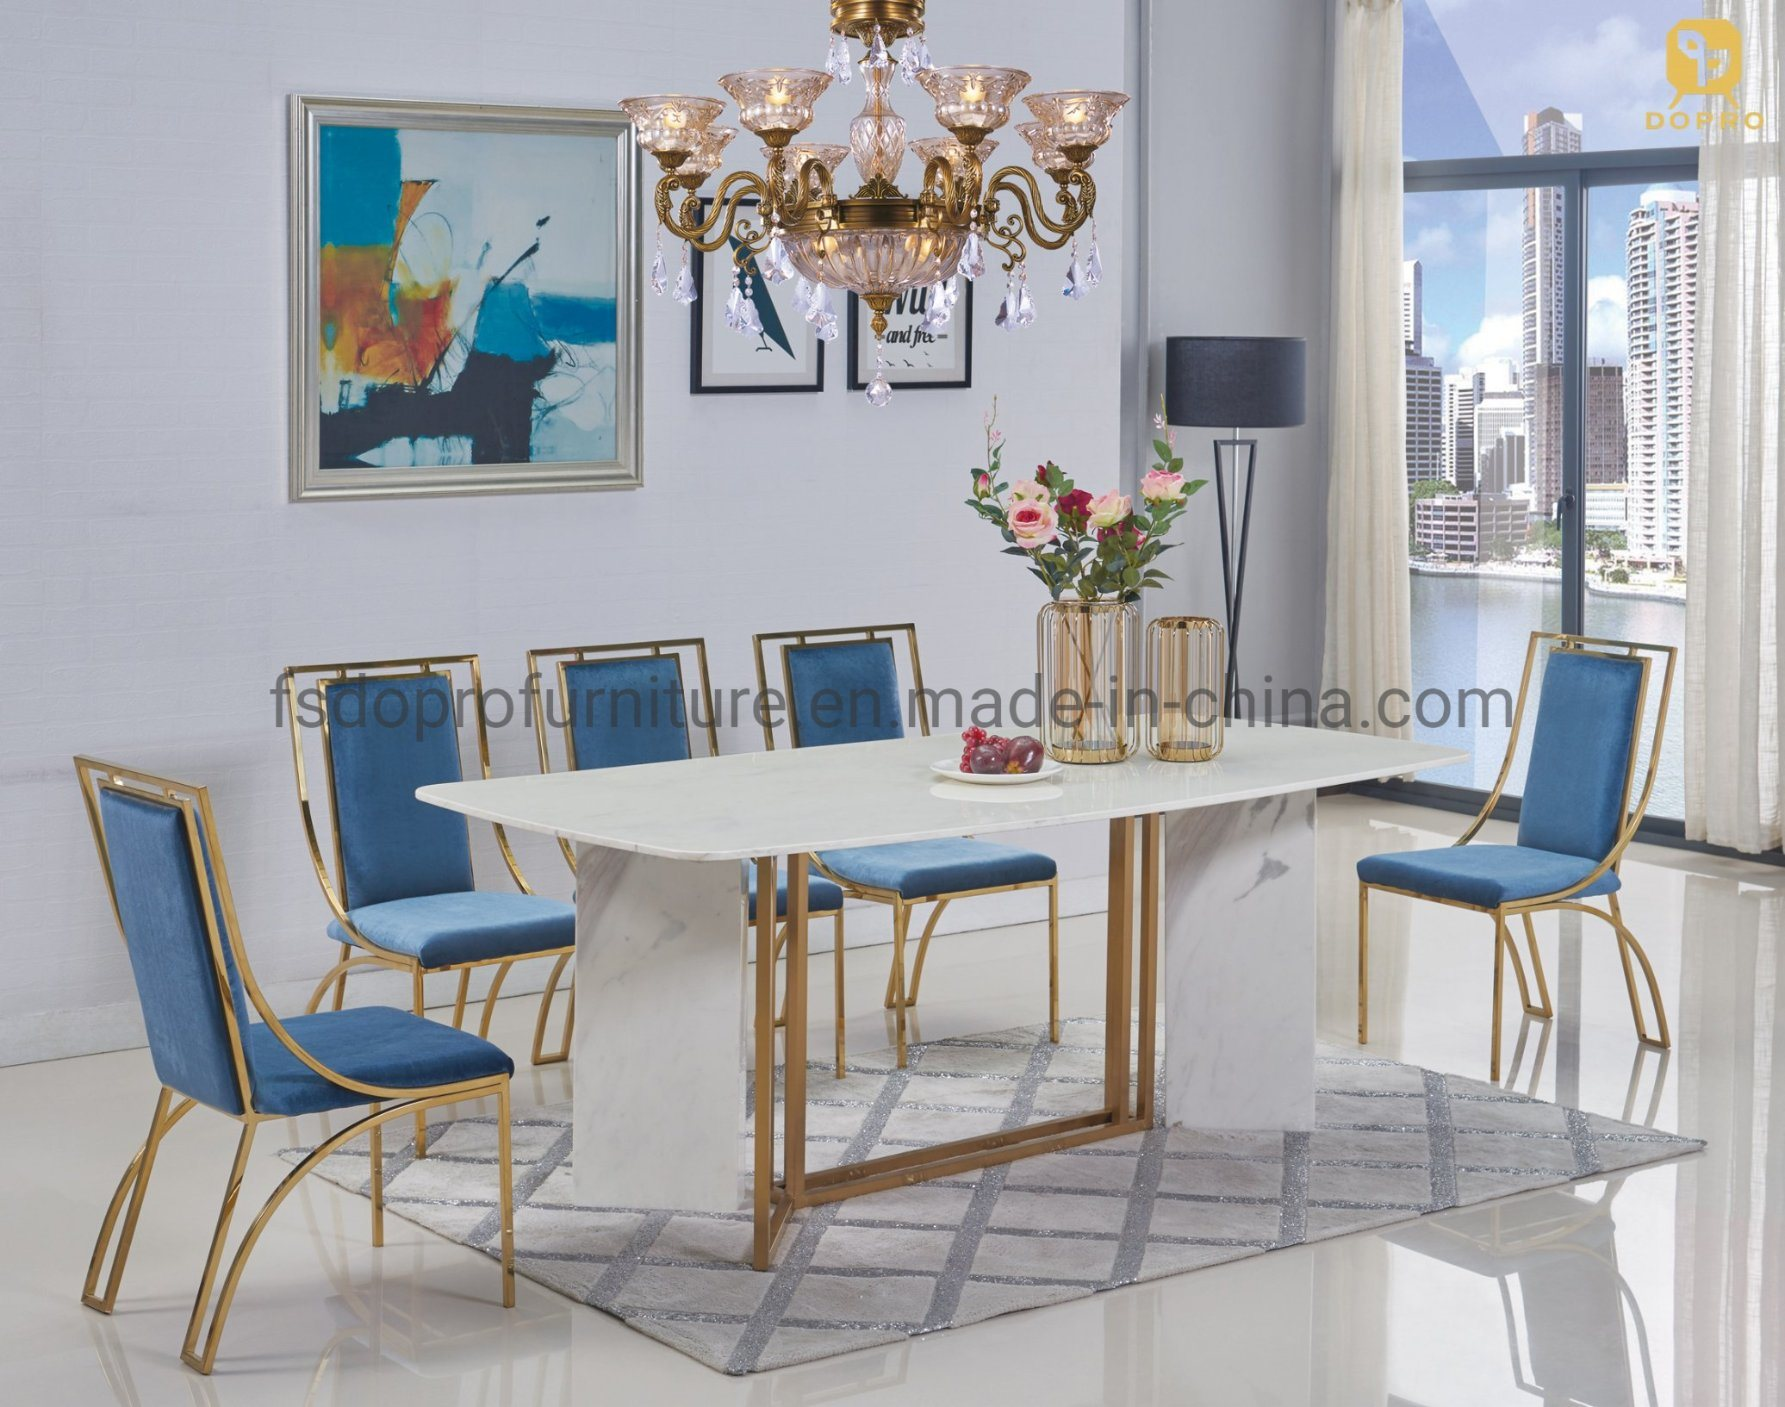 China Modern Luxury New Design White Marble Top Stainless Steel Leg Metal Dining Table D1806 Photos Pictures Made In China Com